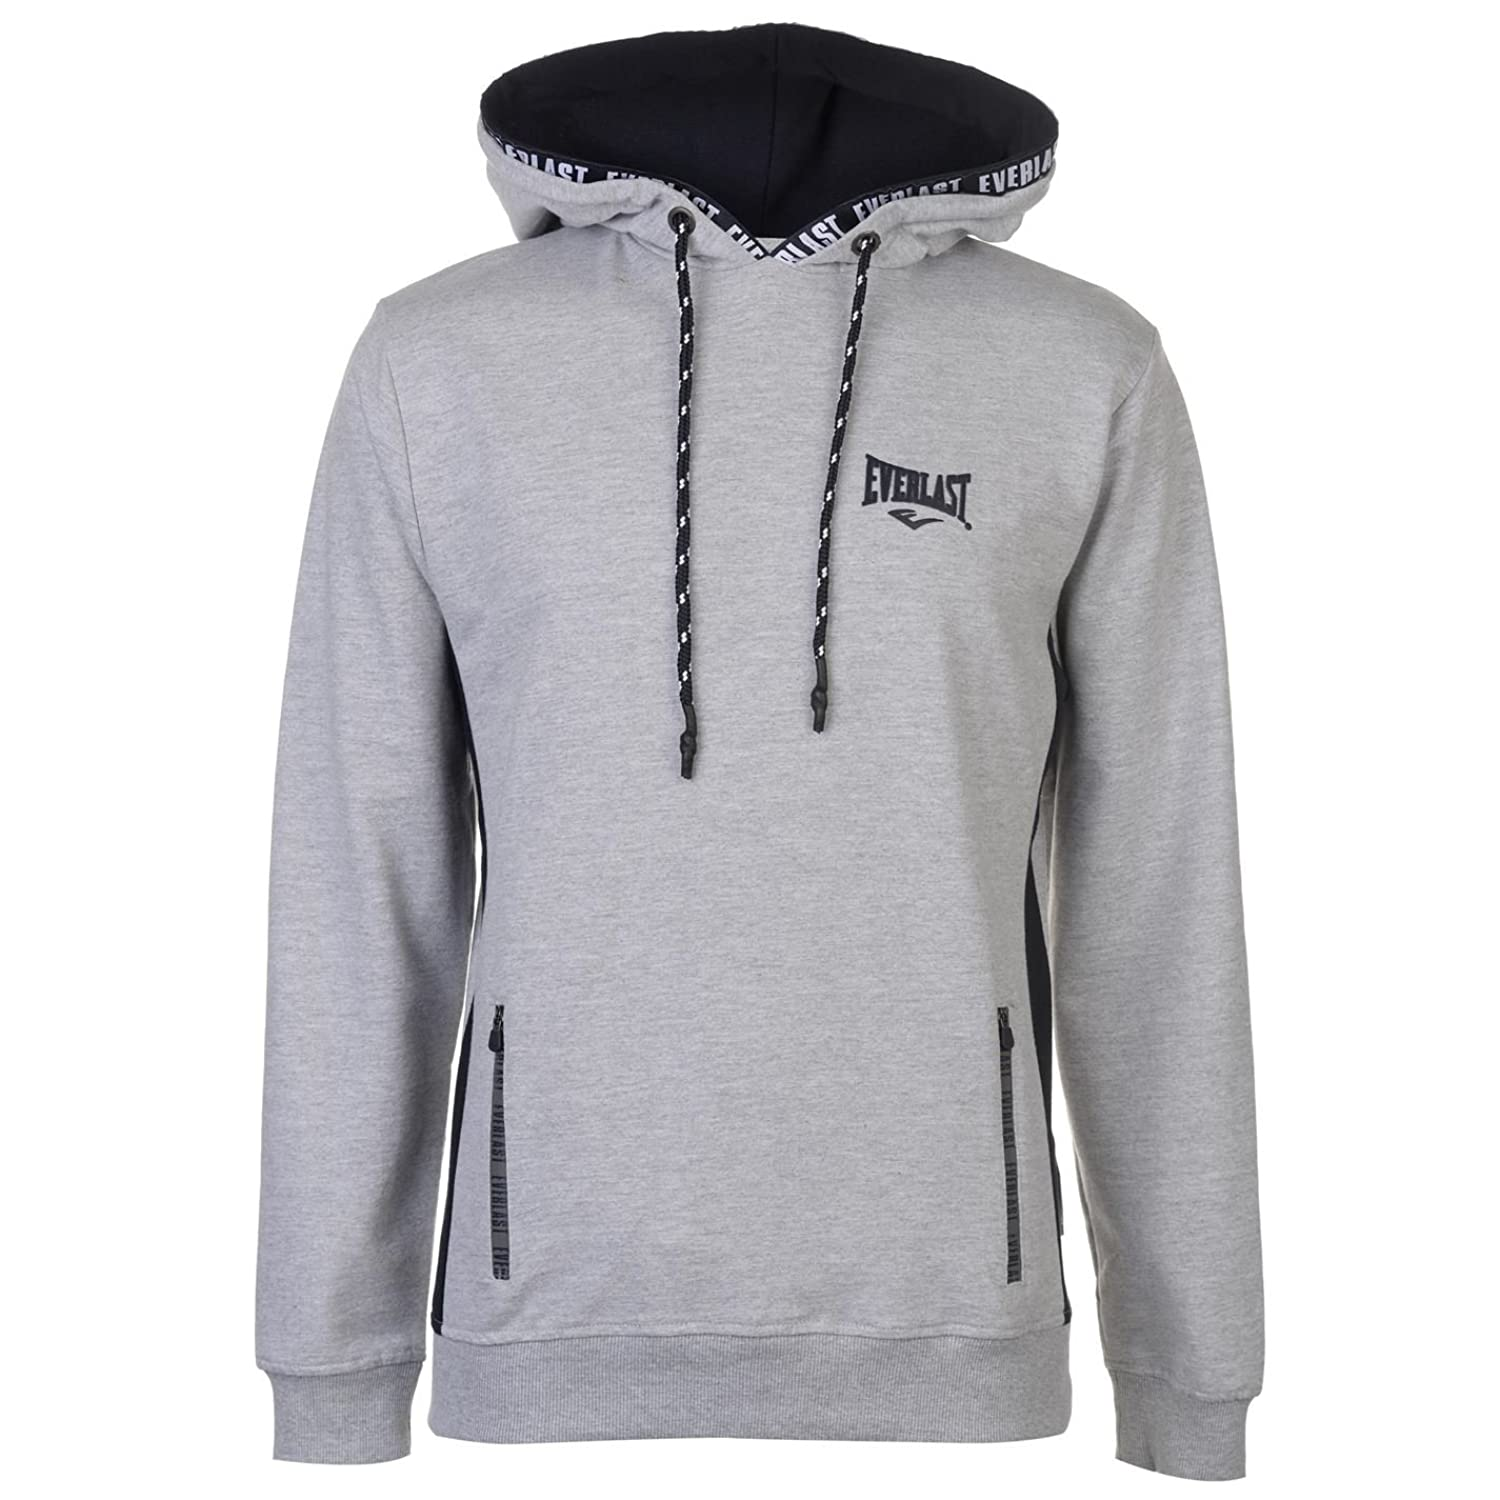 Everlast Hoody Mens Gents OTH Hoodie Hooded Top Full Length Sleeve Drawstring